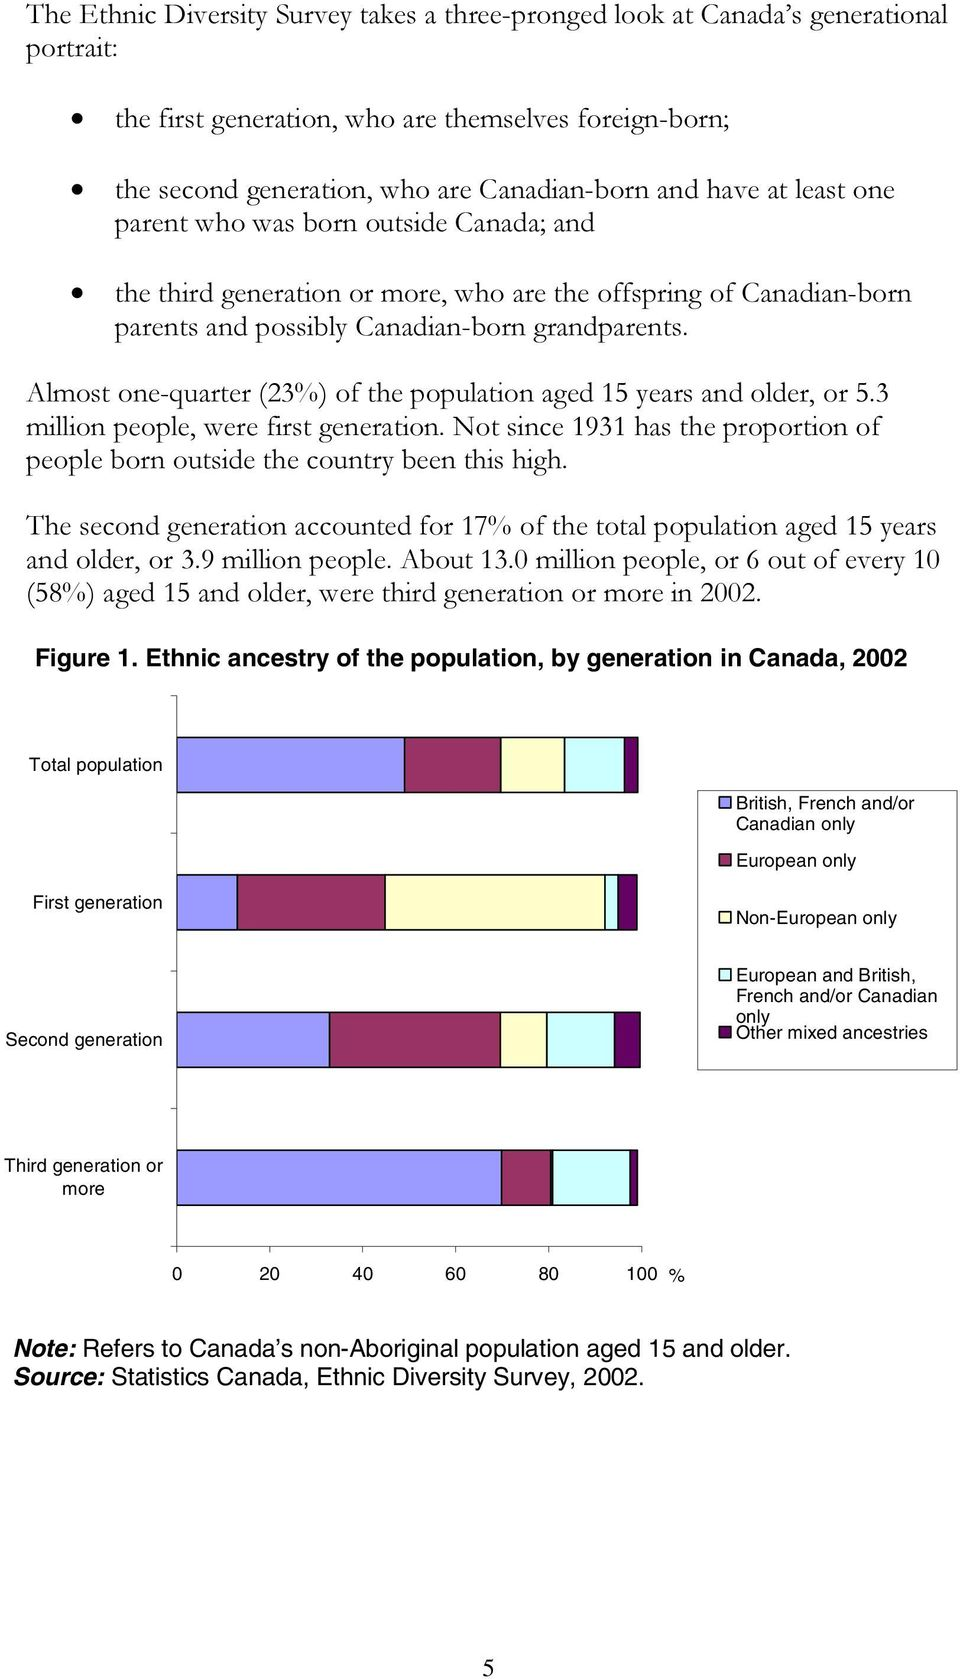 Almost one-quarter (23%) of the population aged 15 years and older, or 5.3 million people, were first generation. Not since 1931 has the proportion of people born outside the country been this high.